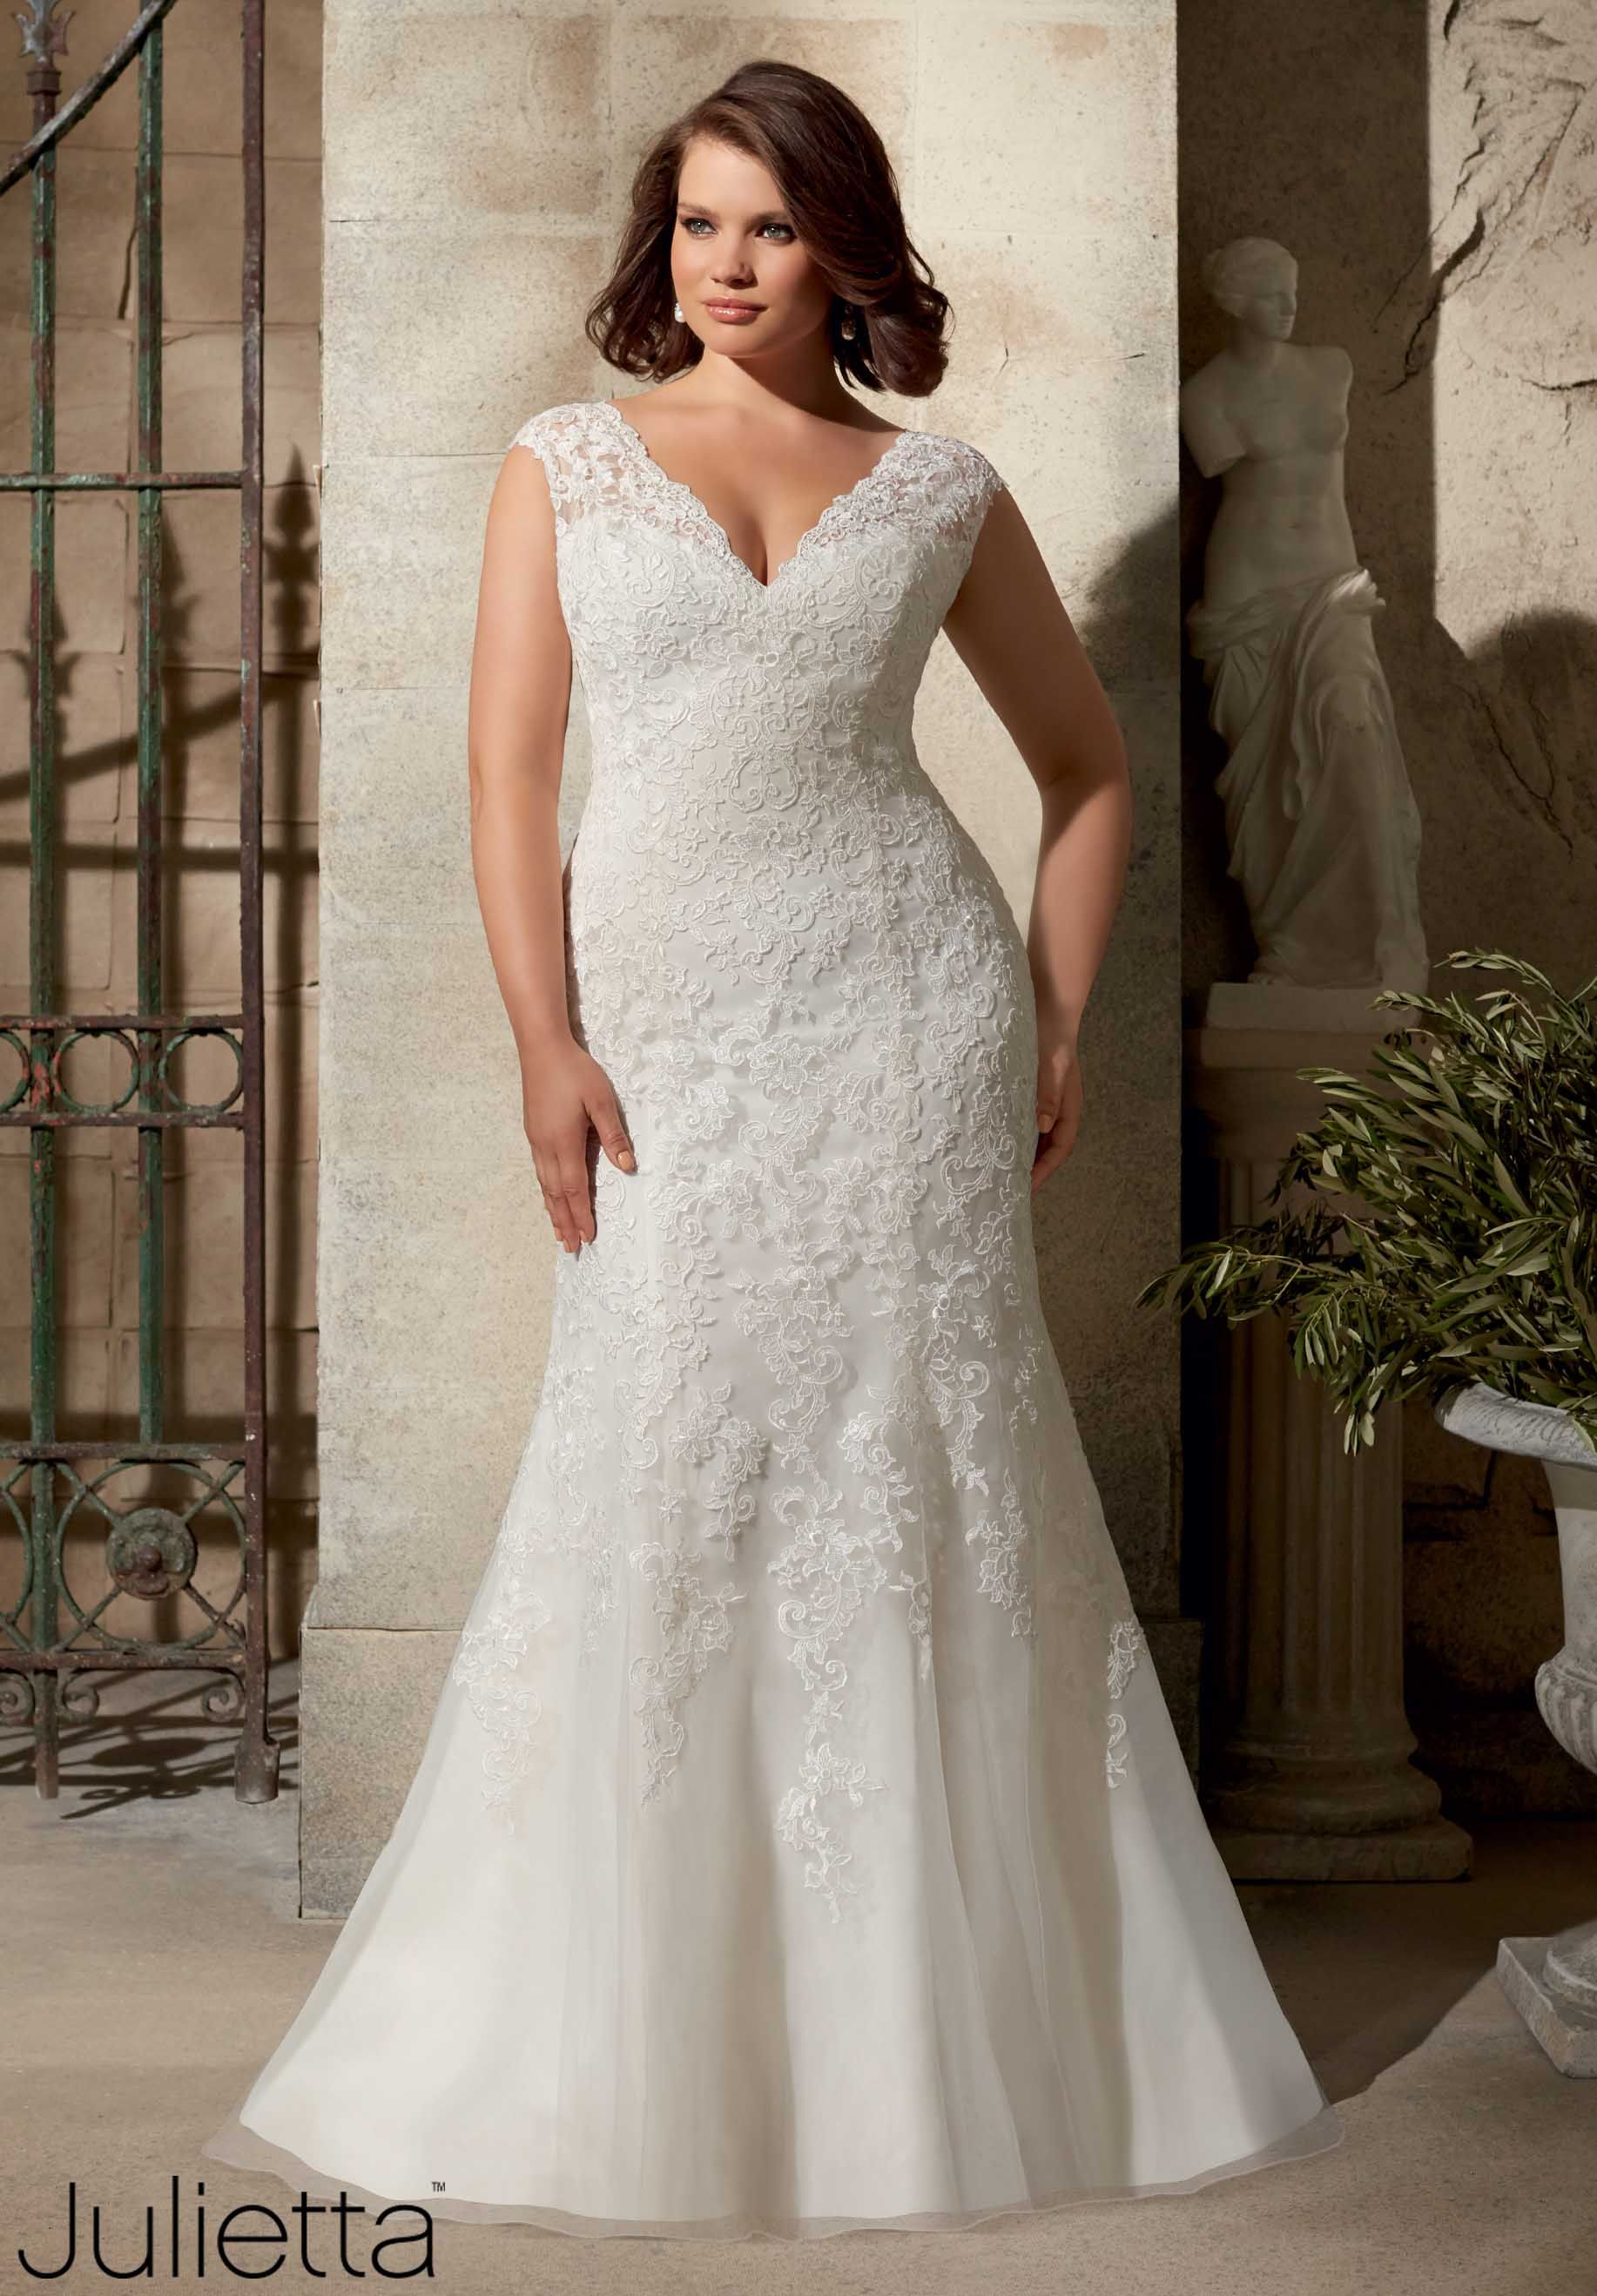 Wedding Gowns By Julietta featuring Venice Lace Appliques on Soft N ...